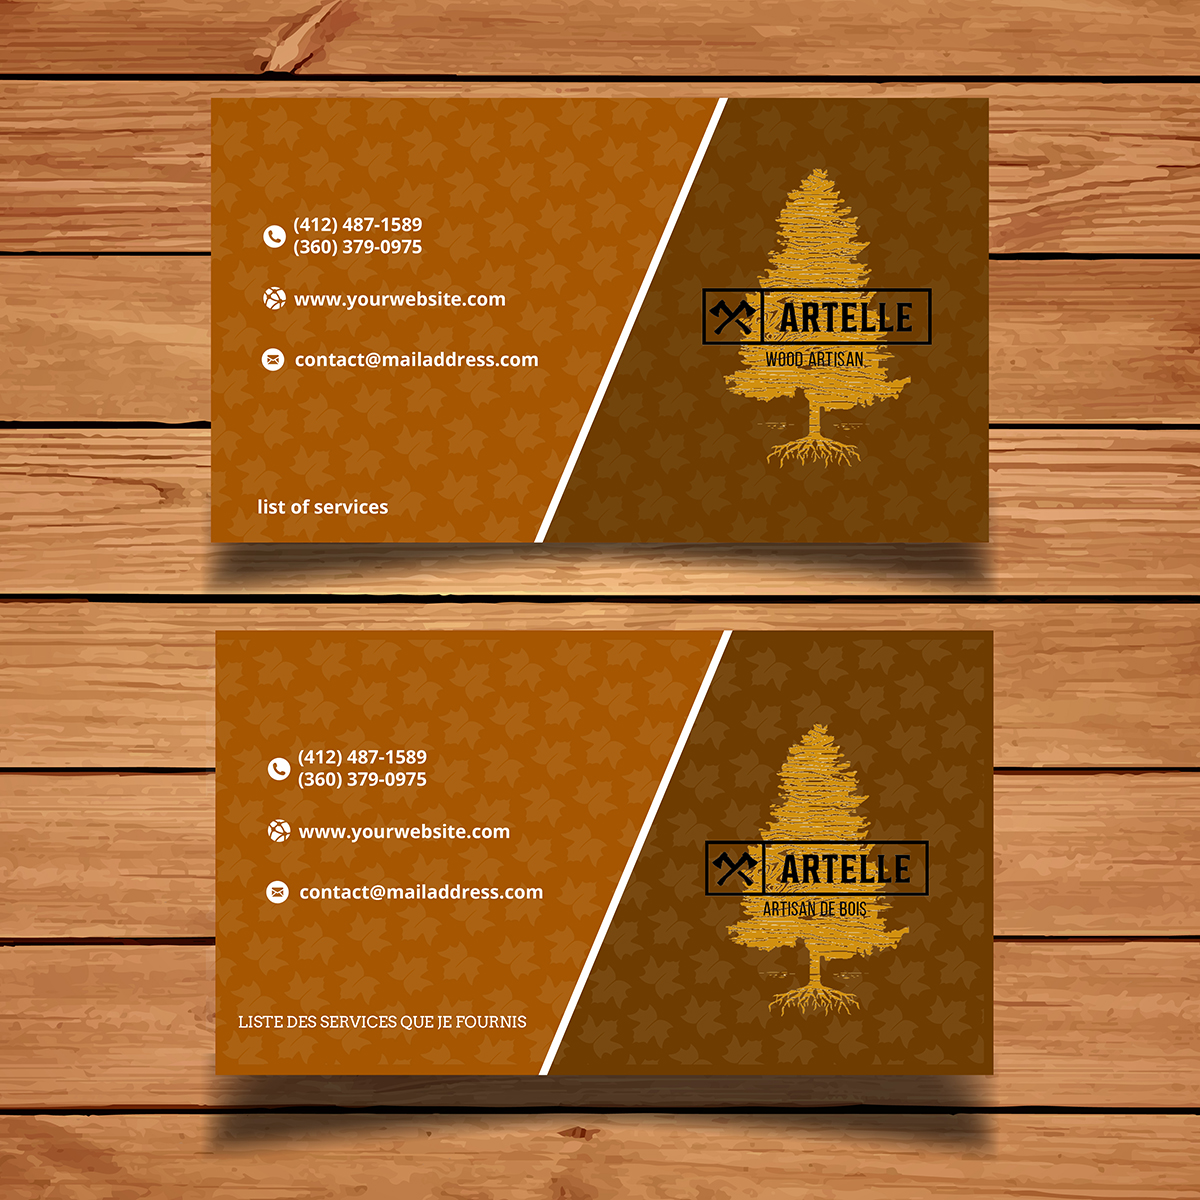 Masculine upmarket construction business card design for a company business card design by tgdesigns for this project design 16571086 colourmoves